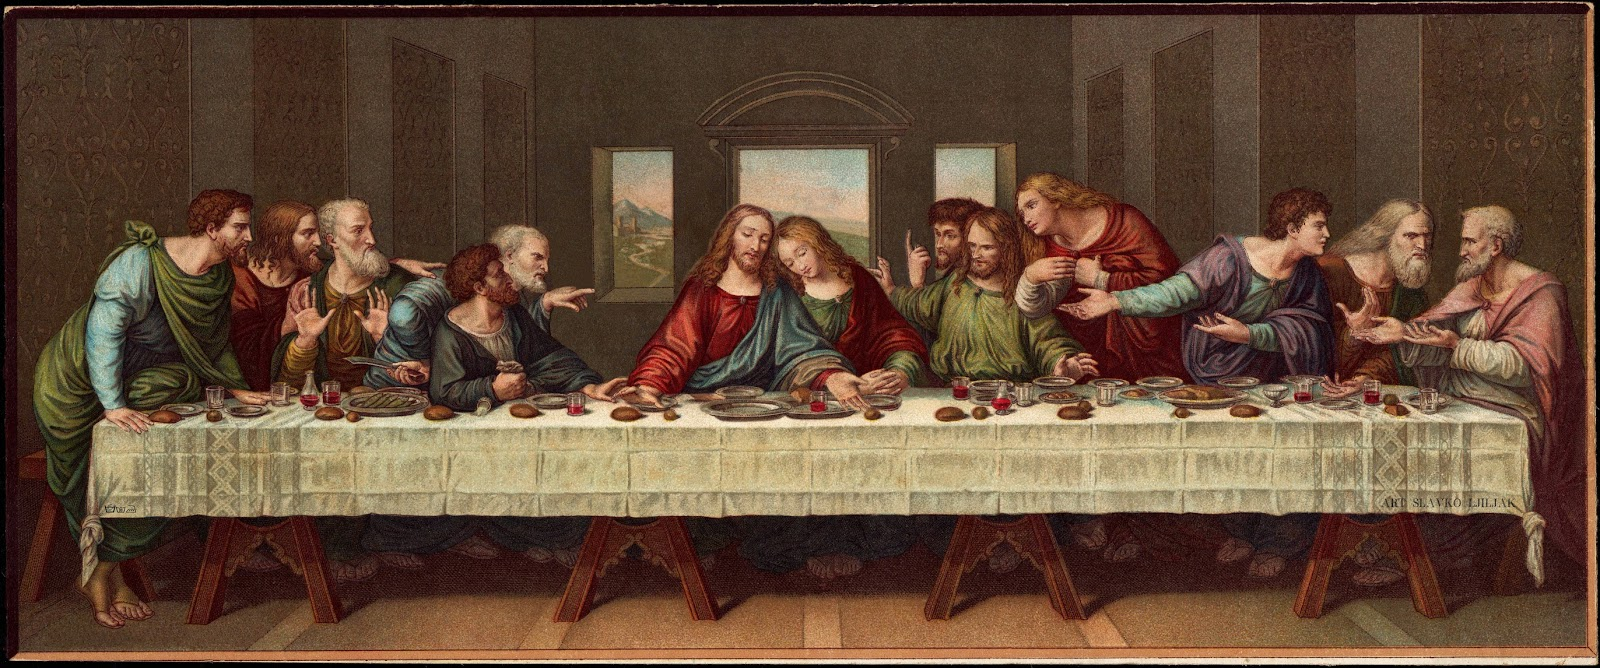 leonardo da vinci the last supper essay Essay about a comparison of da vinci's and tintoretto's the last supper head gives the impression of a halo in tintoretto's work, there are a couple of interesting.